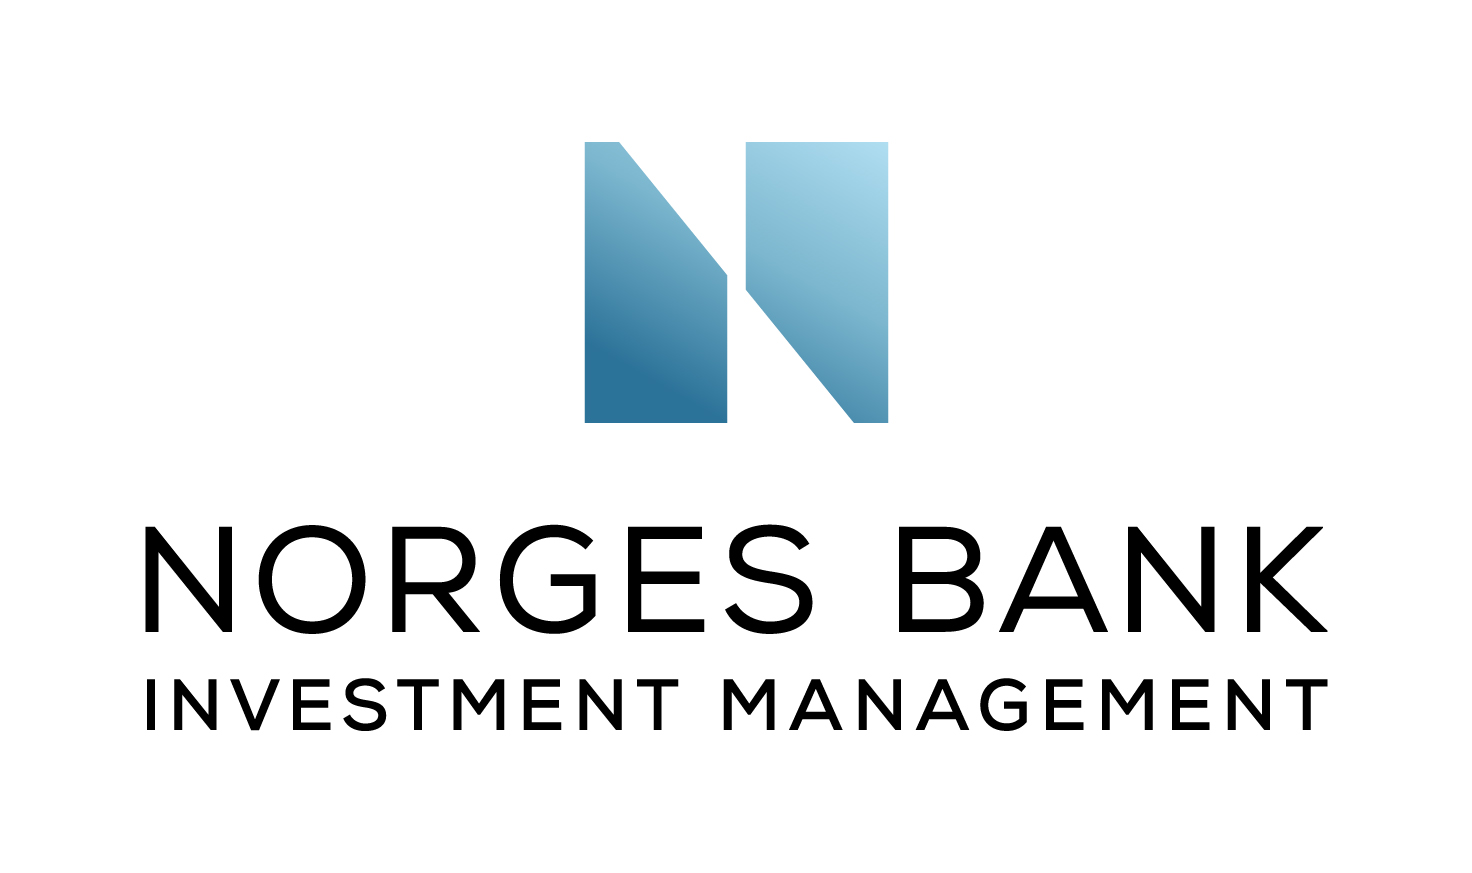 Norges bank investment management singapore careers if an investments net present value is negative 7